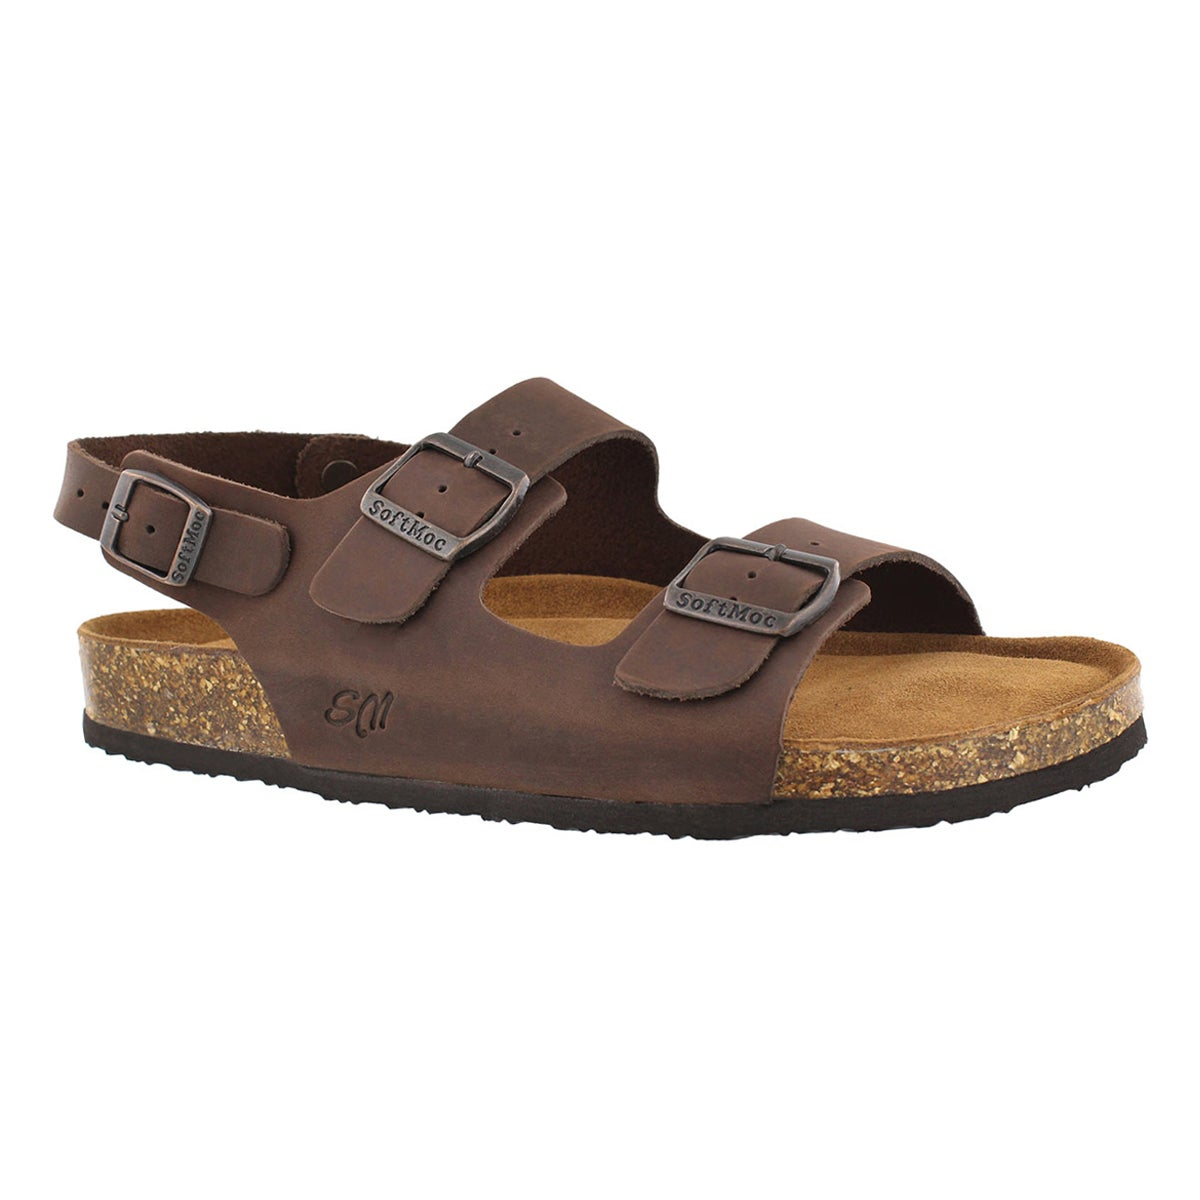 Men's RUBEN 5 brown memory foam sandals